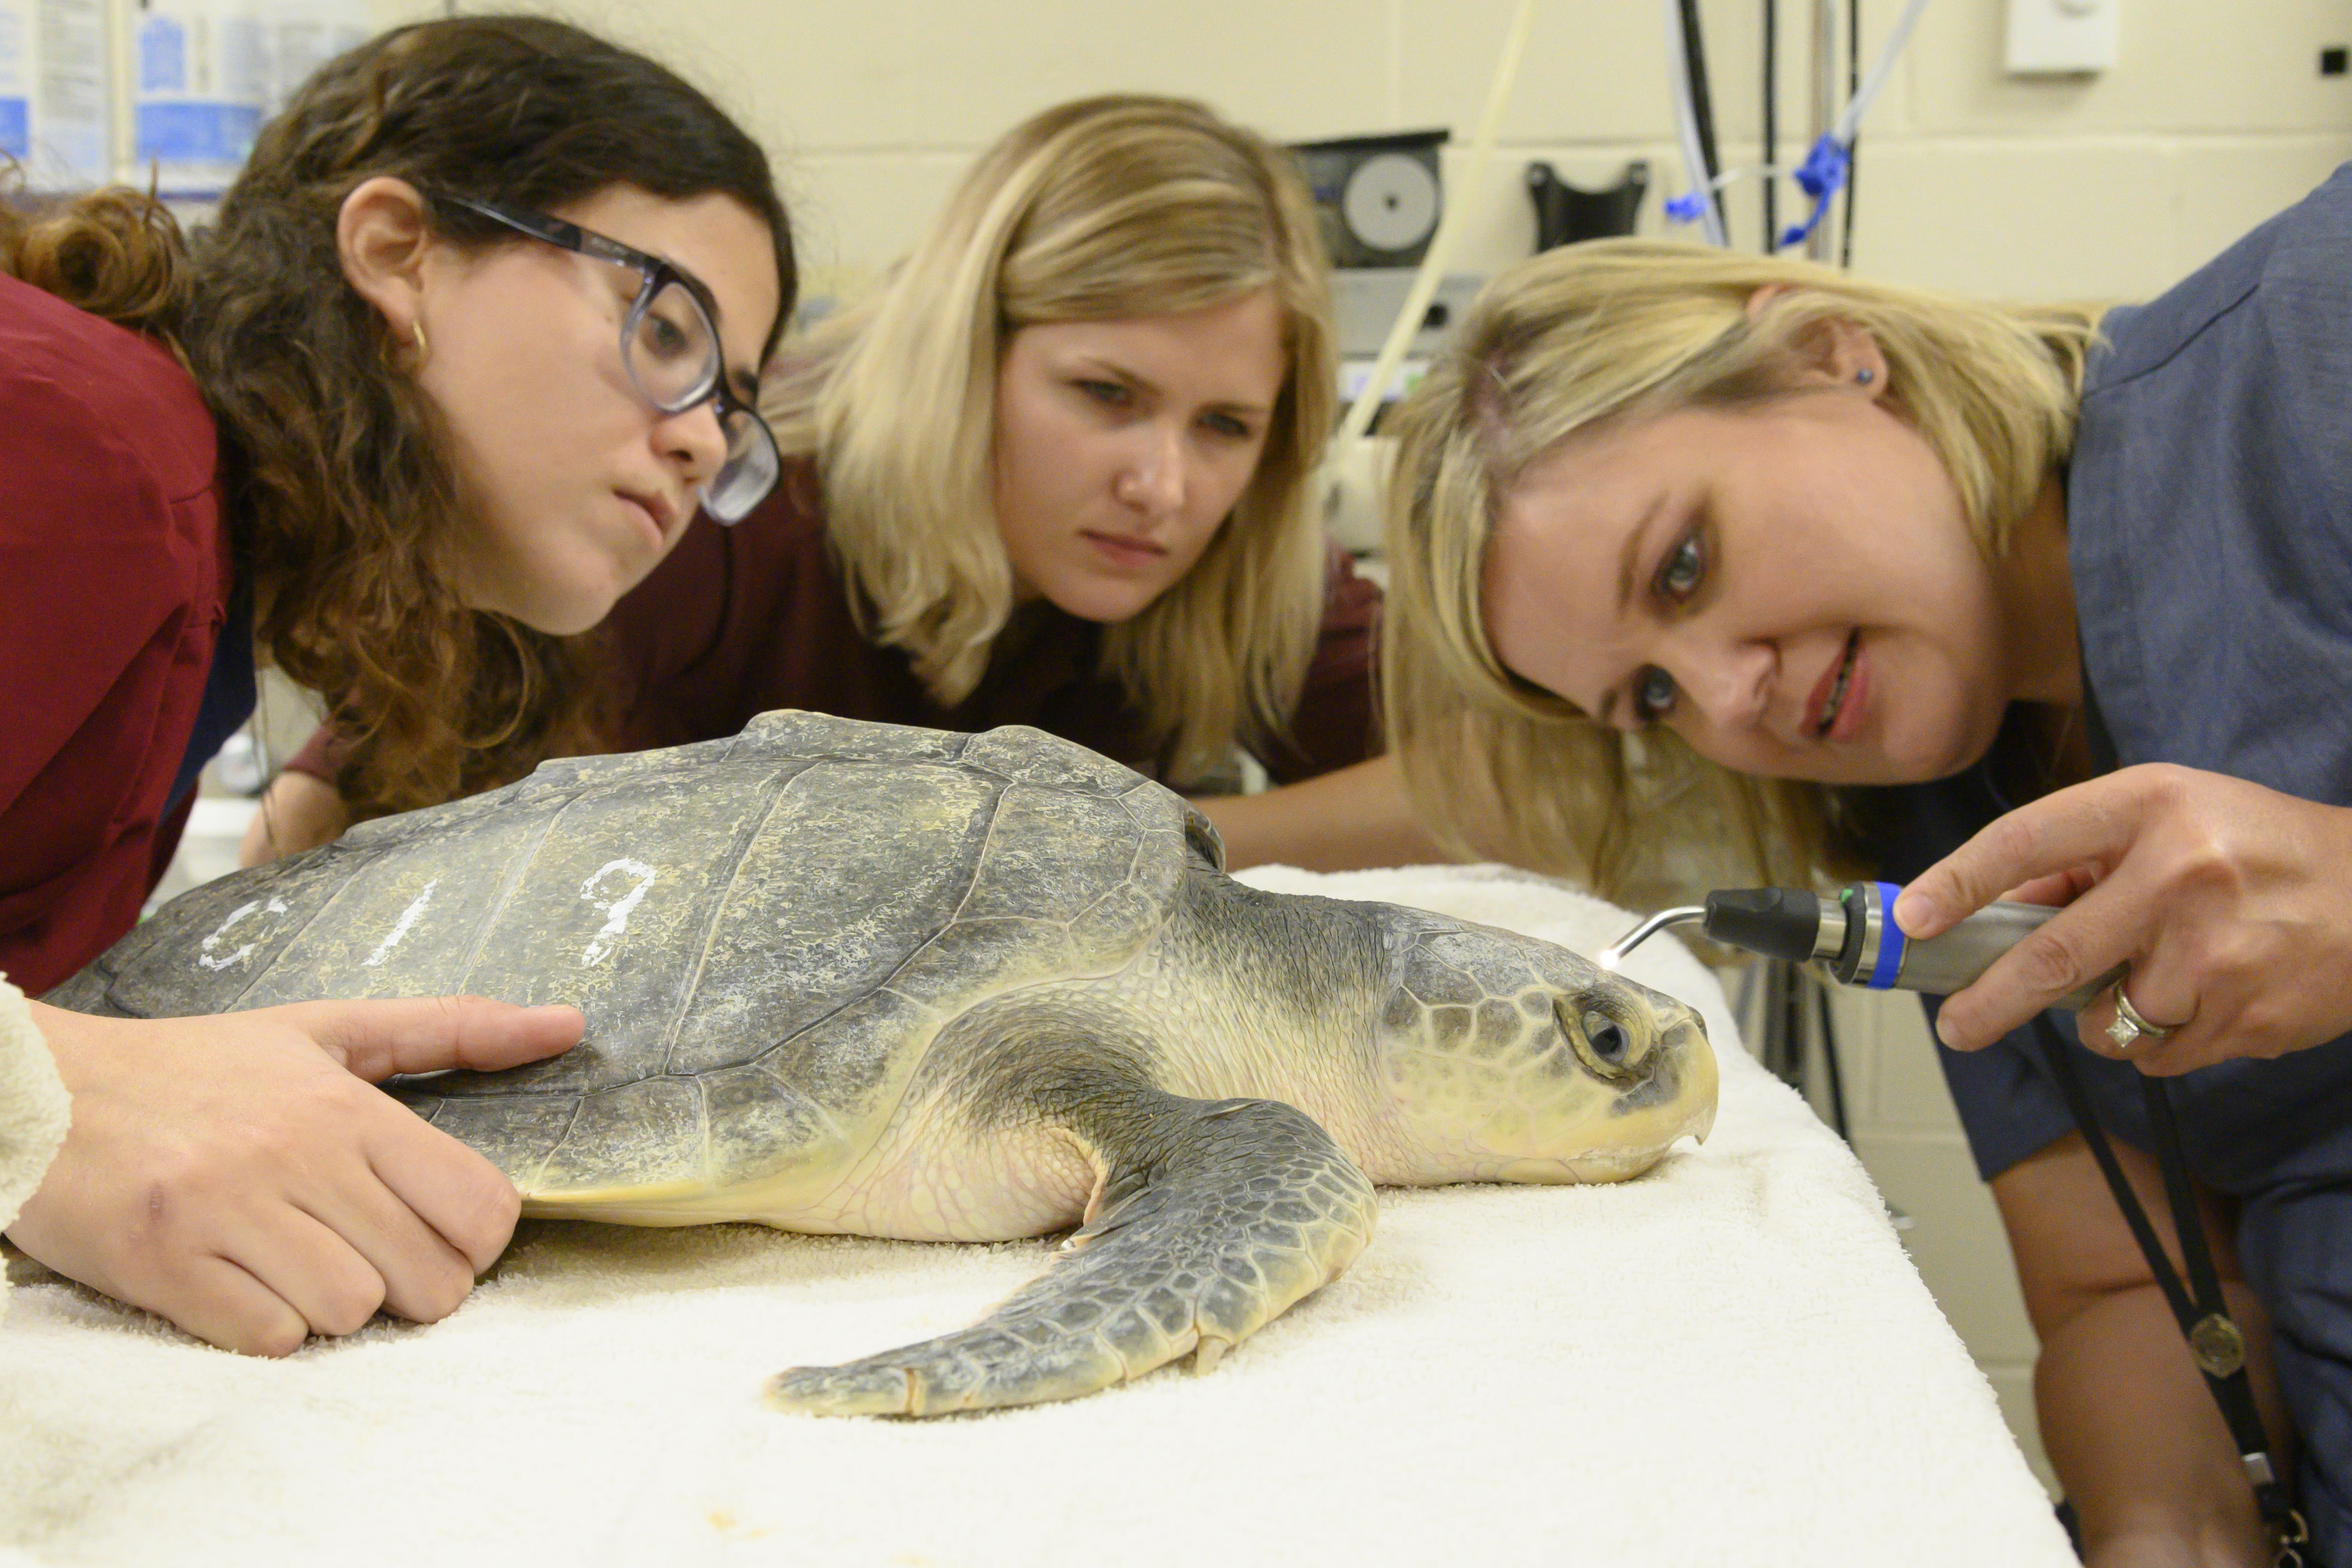 Two students and a veterinarian examine a sea turtle